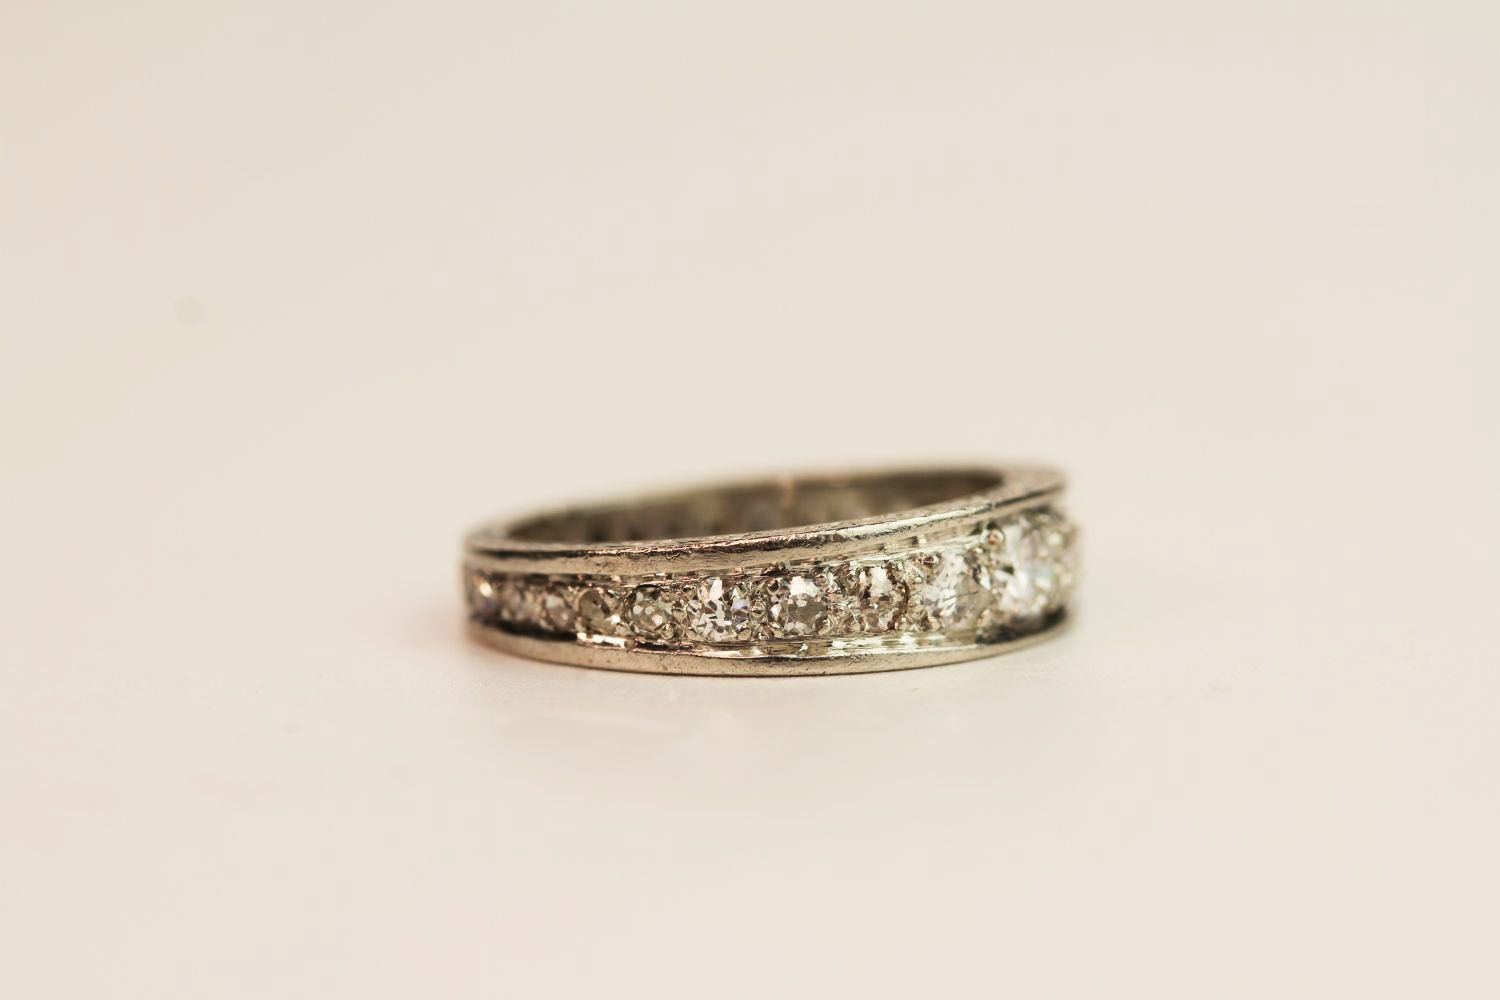 1930s Graduated Diamond Ring, detailing to the sid - Image 2 of 3